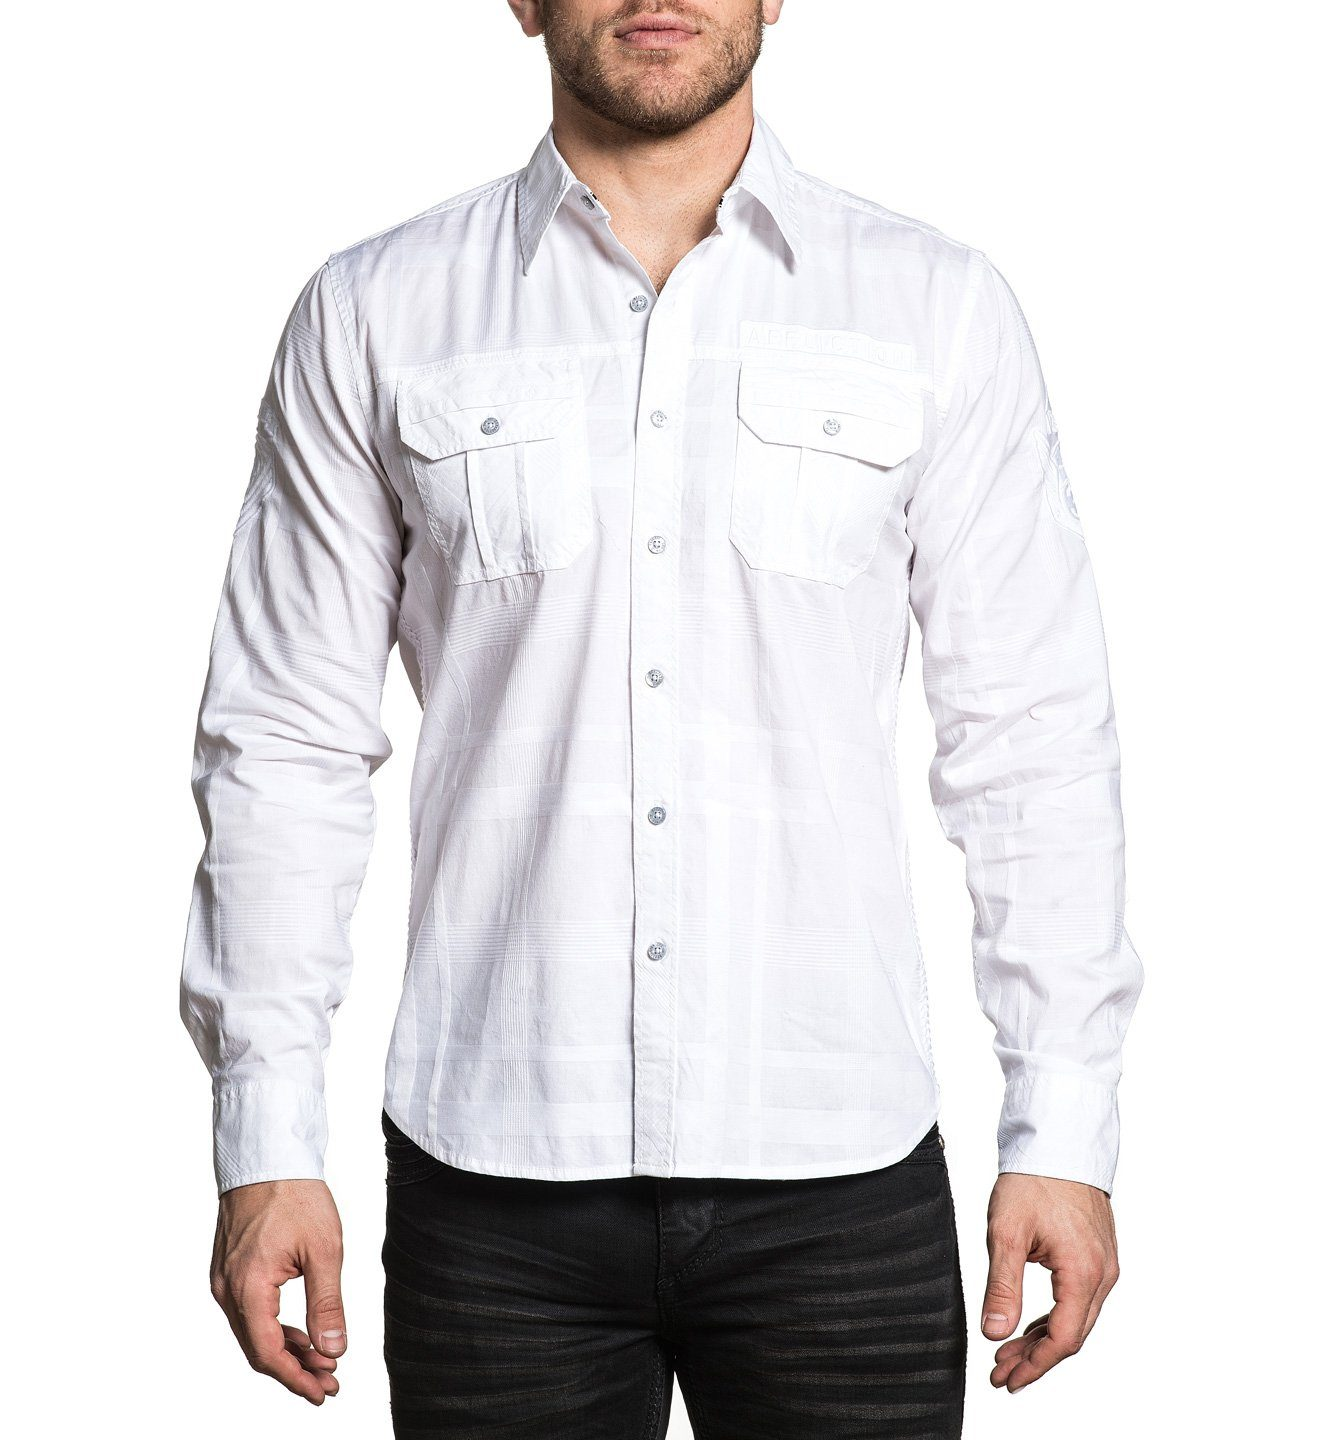 Commend - Mens Button Down Tops - Affliction Clothing